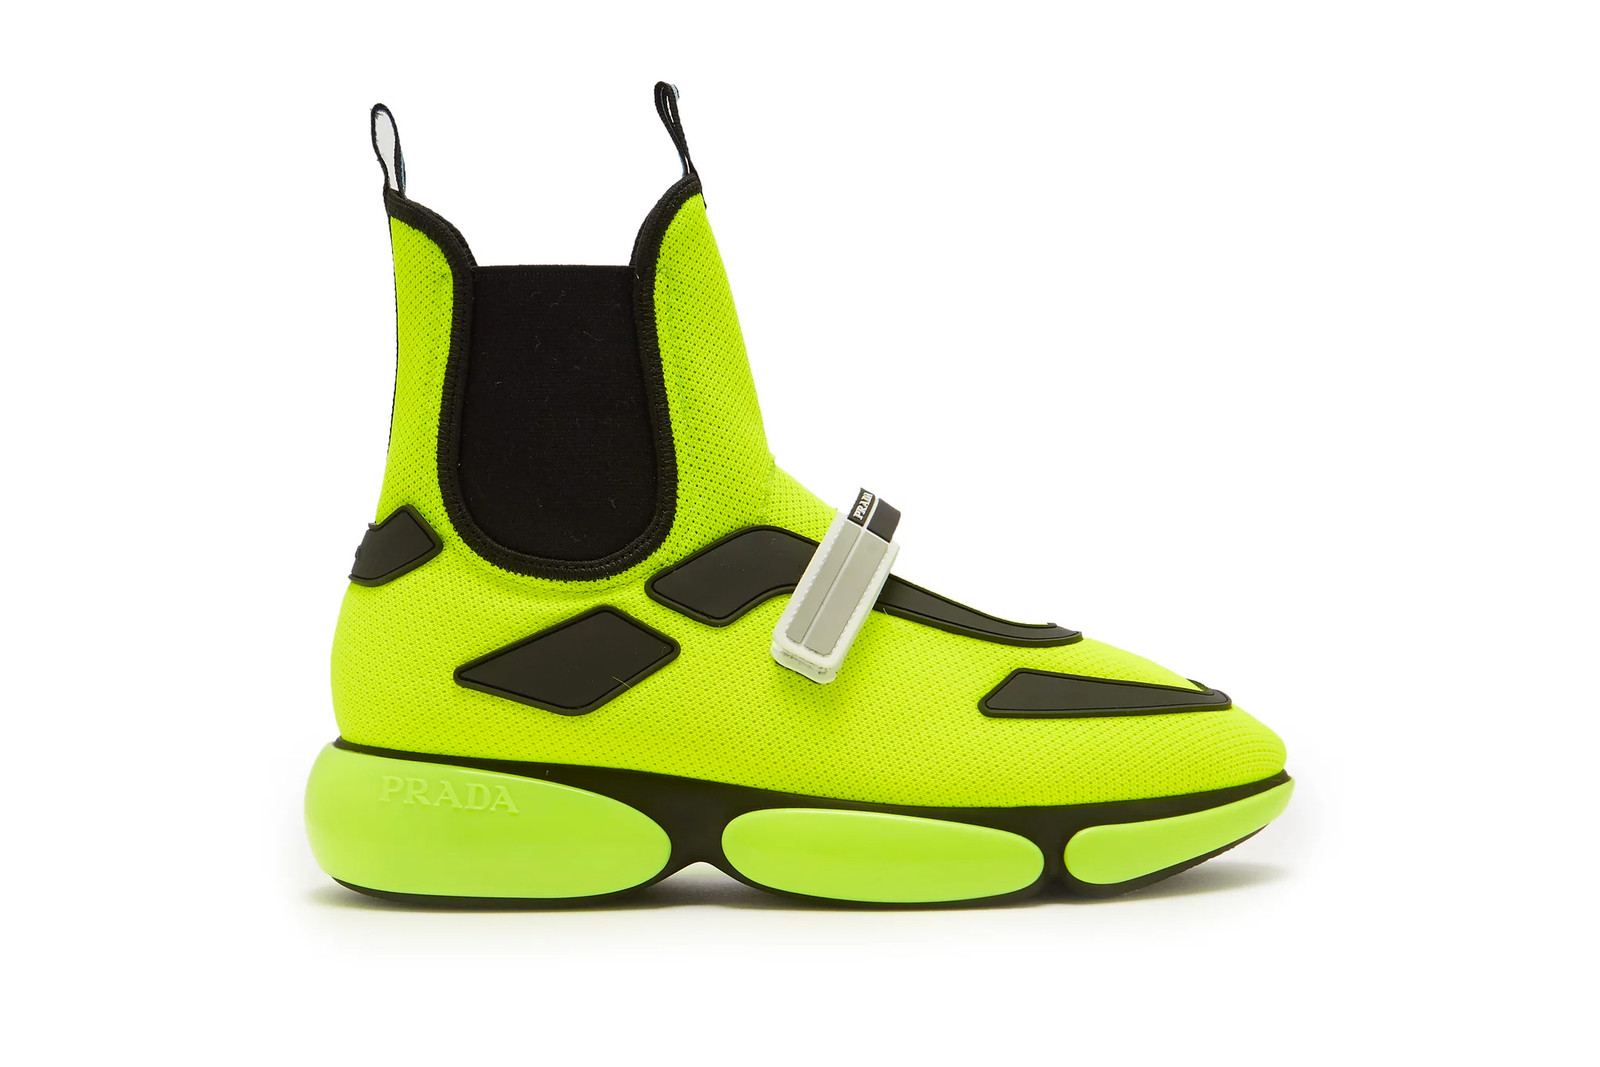 Neon Clothes Turtleneck Pink Green Yellow Prada Balenciaga Bright Color Fall Winter Wardrobe Sneaker Roundup